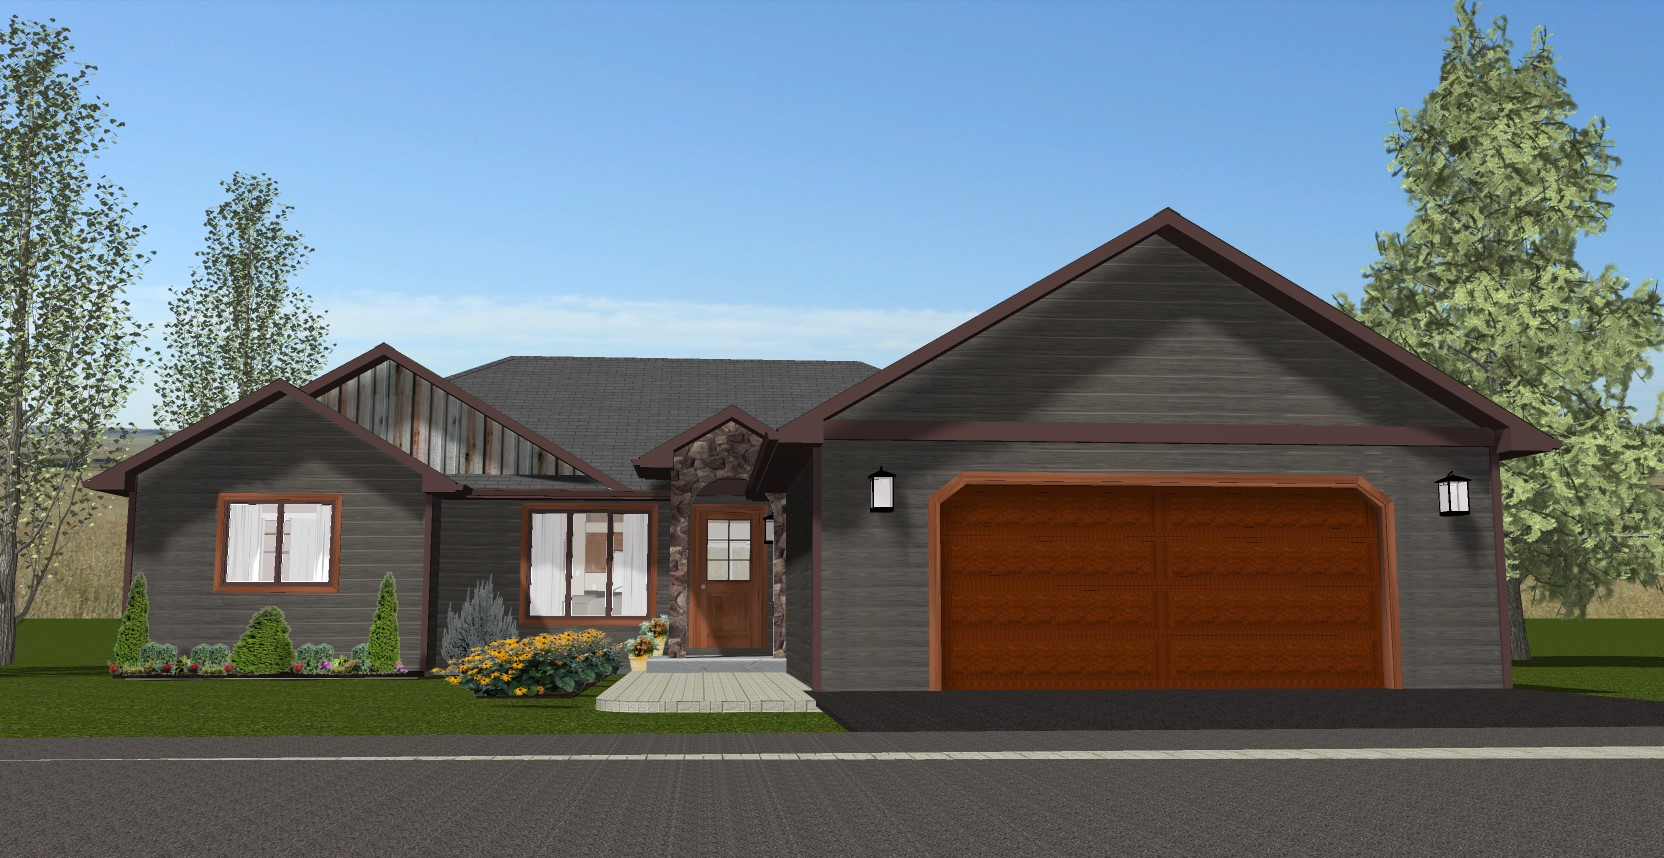 //kibhomes.com/wp-content/uploads/2020/04/FRONT-VIEW-1.jpg